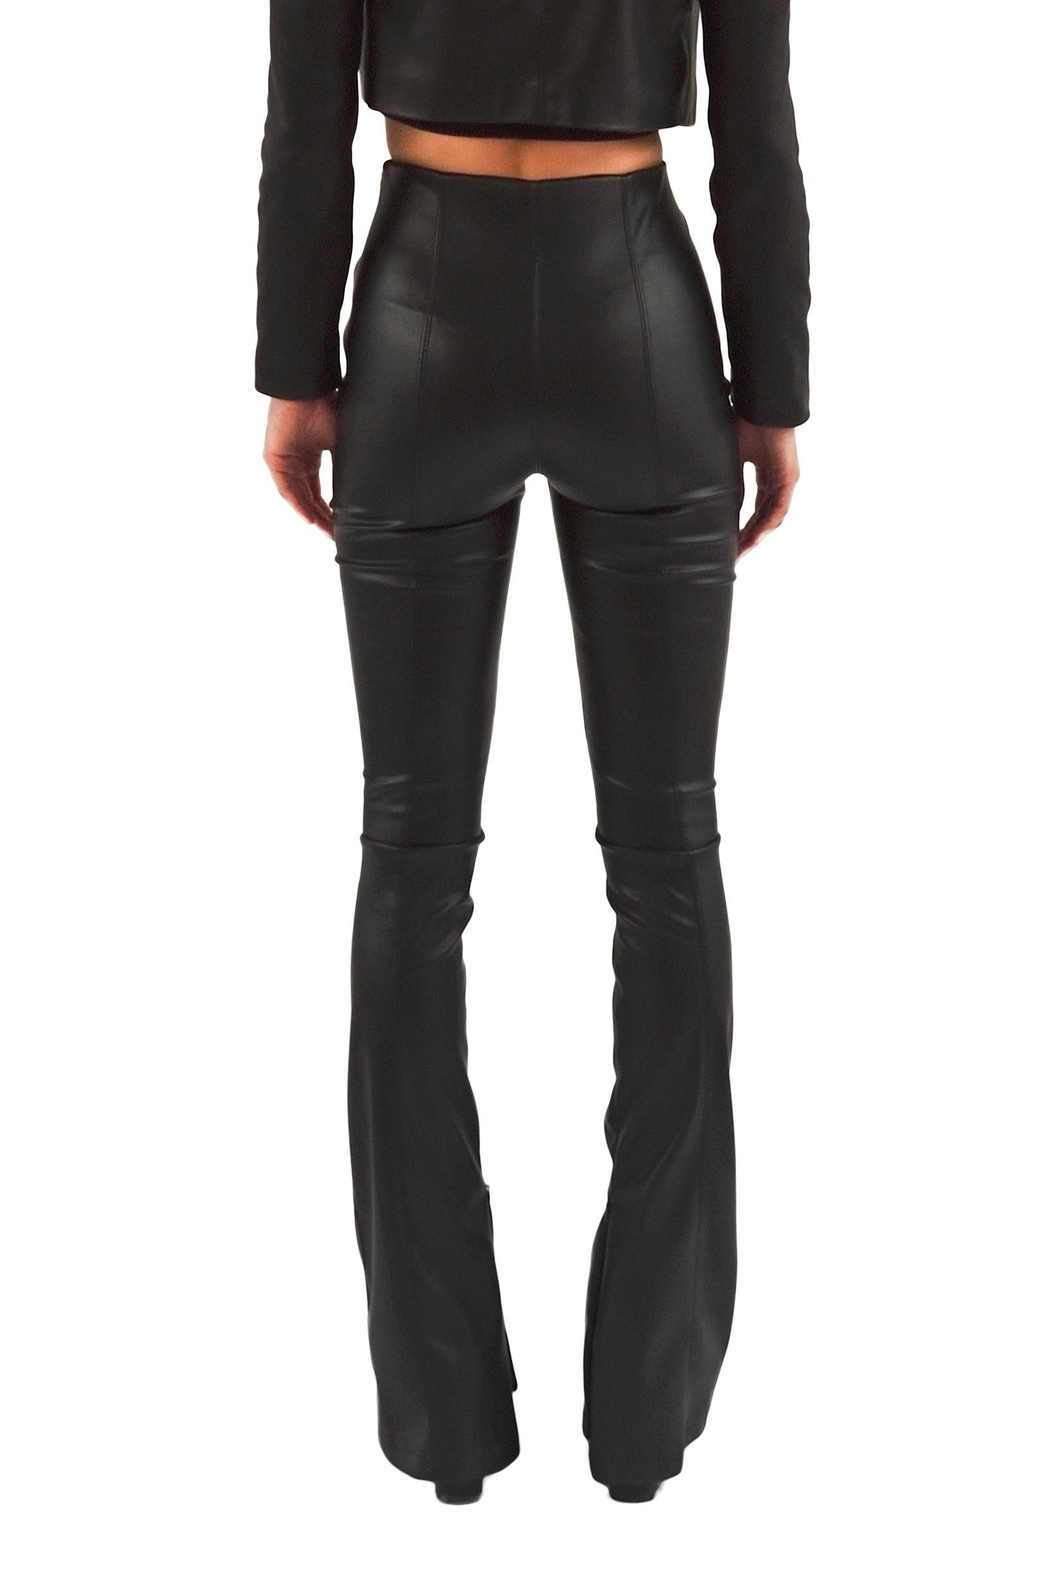 Viesca y Viesca Vegan Leather Pants - Side Cropped Image